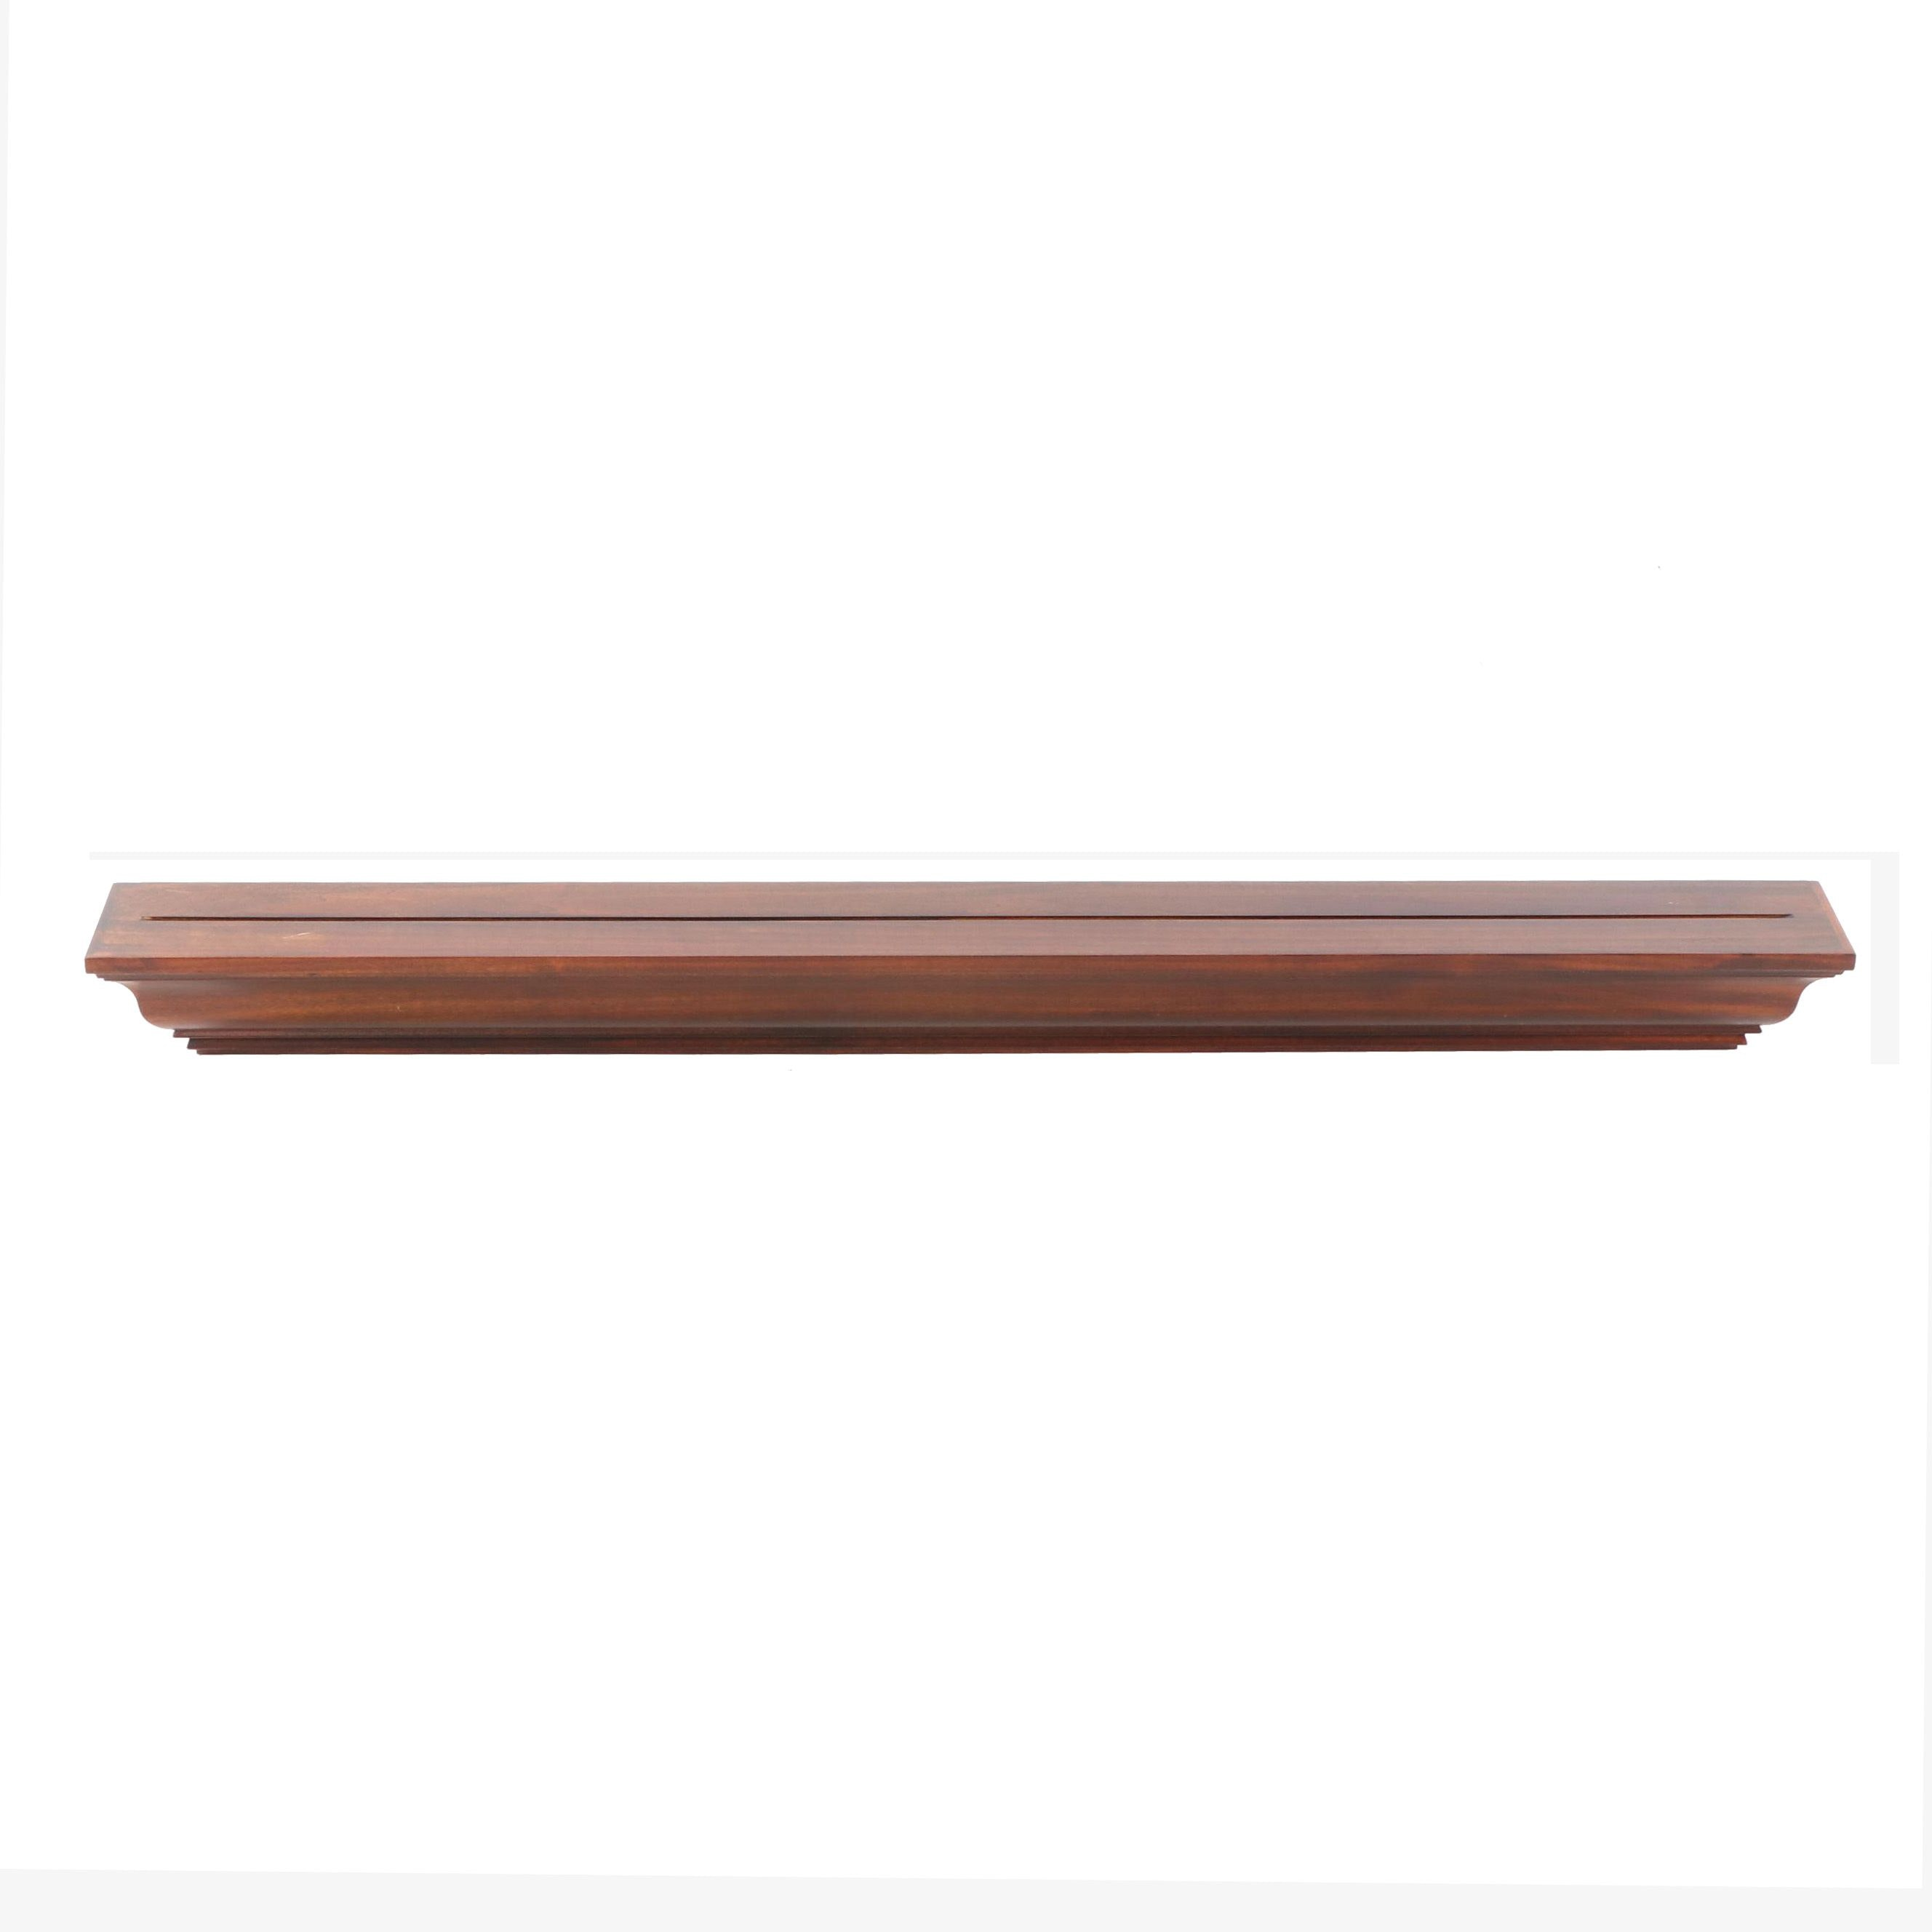 Pottery Barn Crown Molding Picture Ledge Shelf